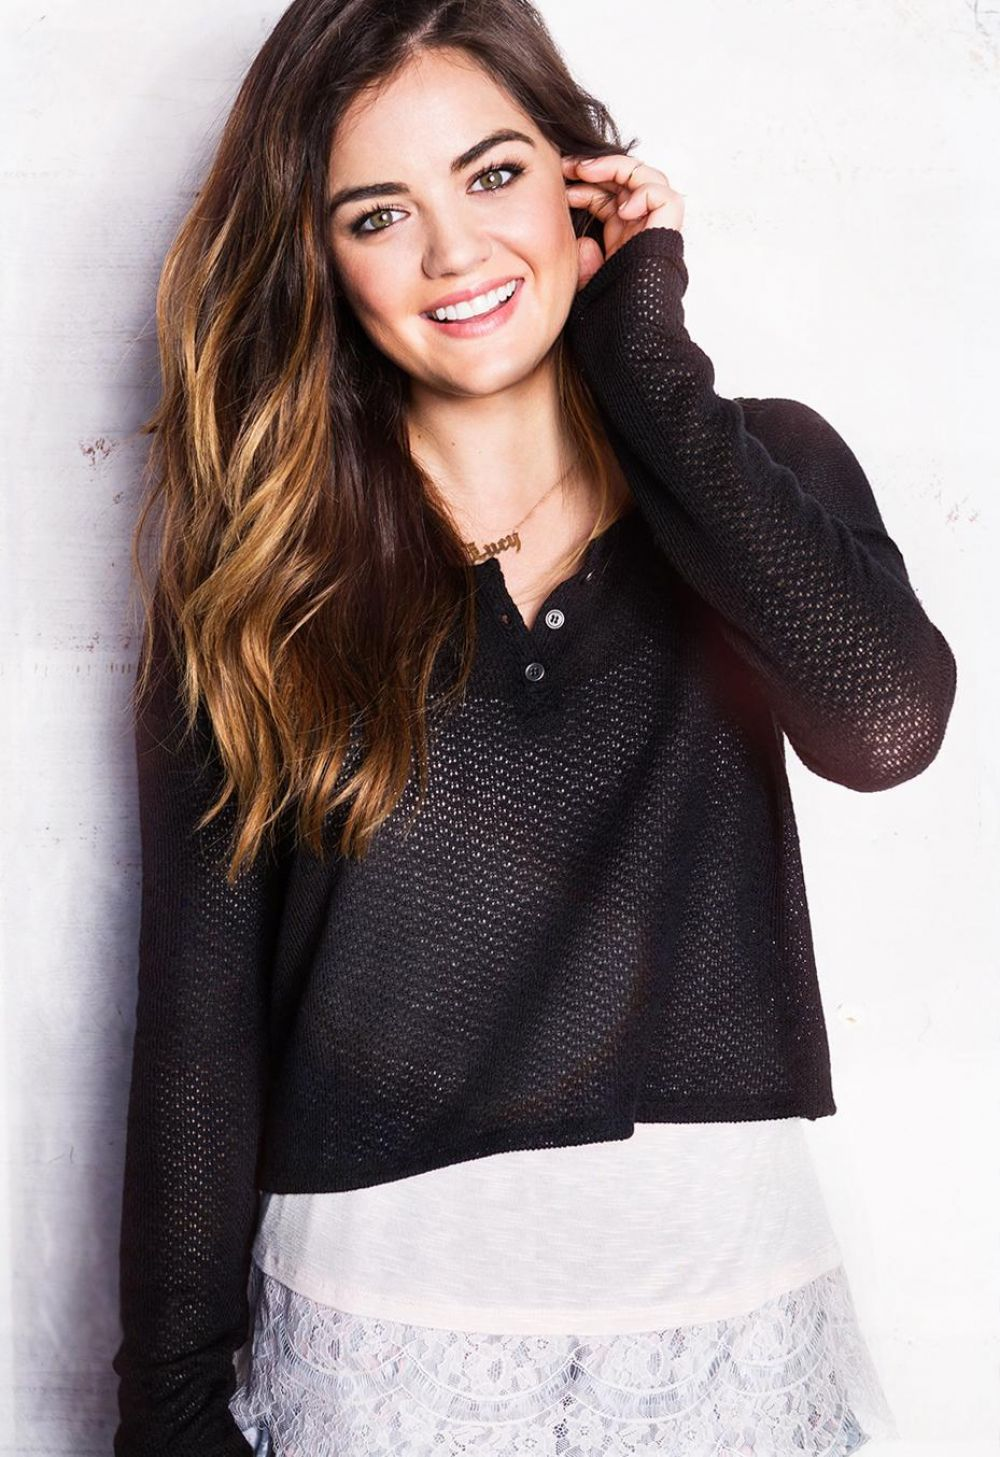 LUCY HALE - Hollister Clothing Promoshoot